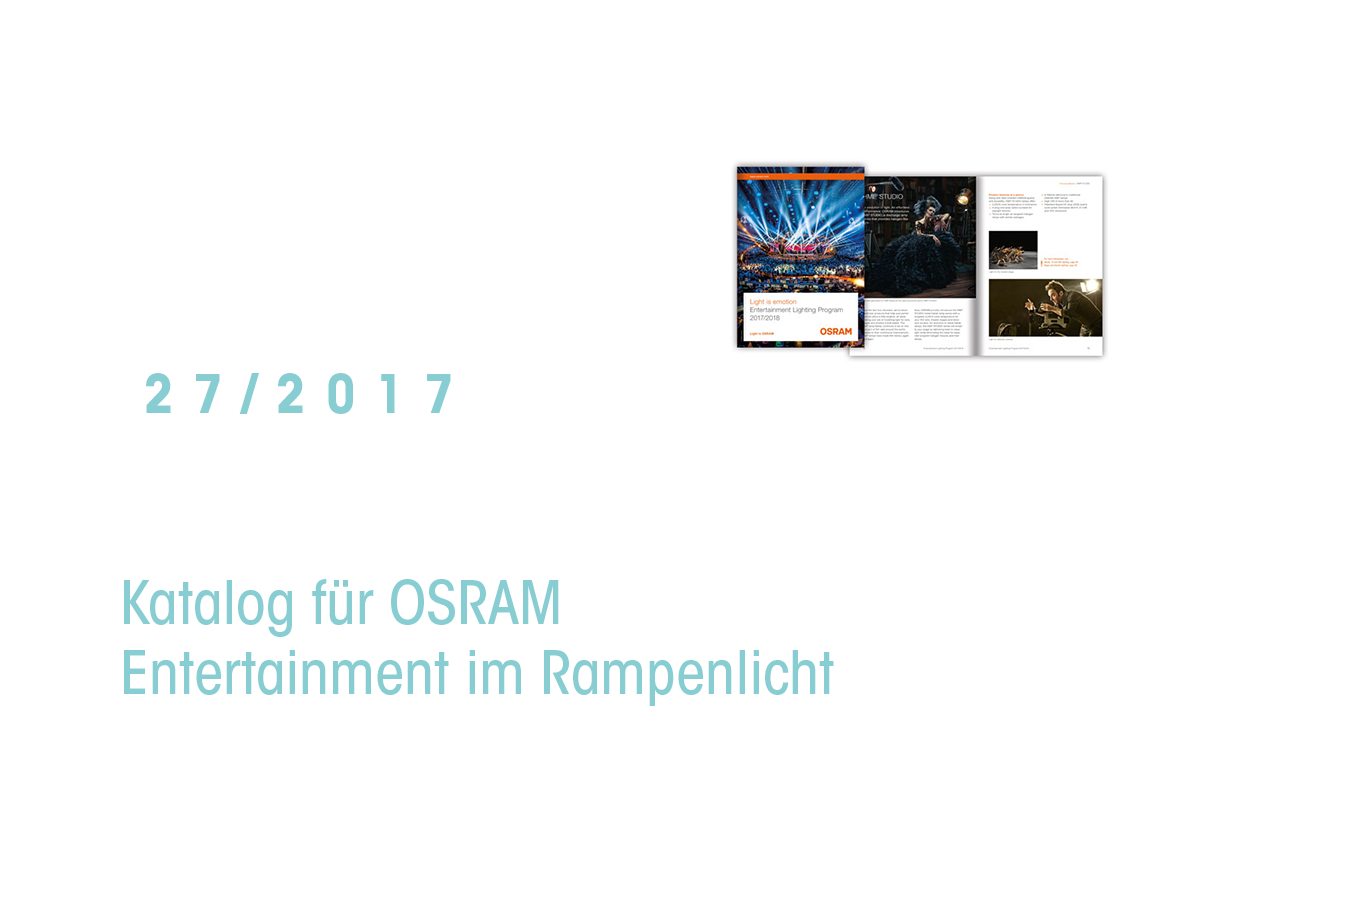 katalog f r osram entertainment im rampenlicht l hr partner werbeagentur aus m nchen. Black Bedroom Furniture Sets. Home Design Ideas